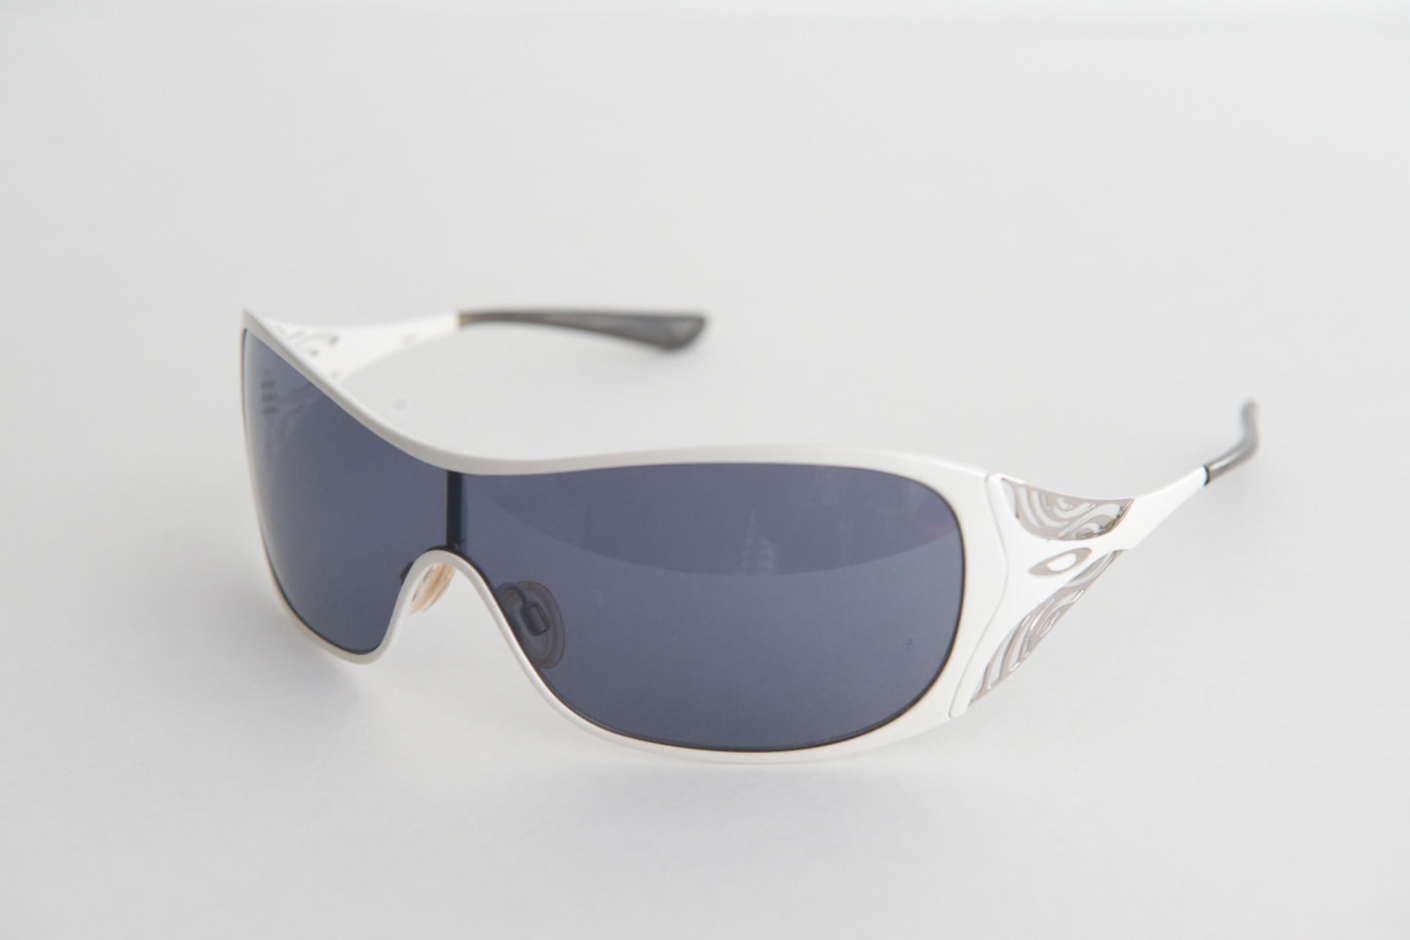 oakley sunglasses scratch repair  oakley liv 05671